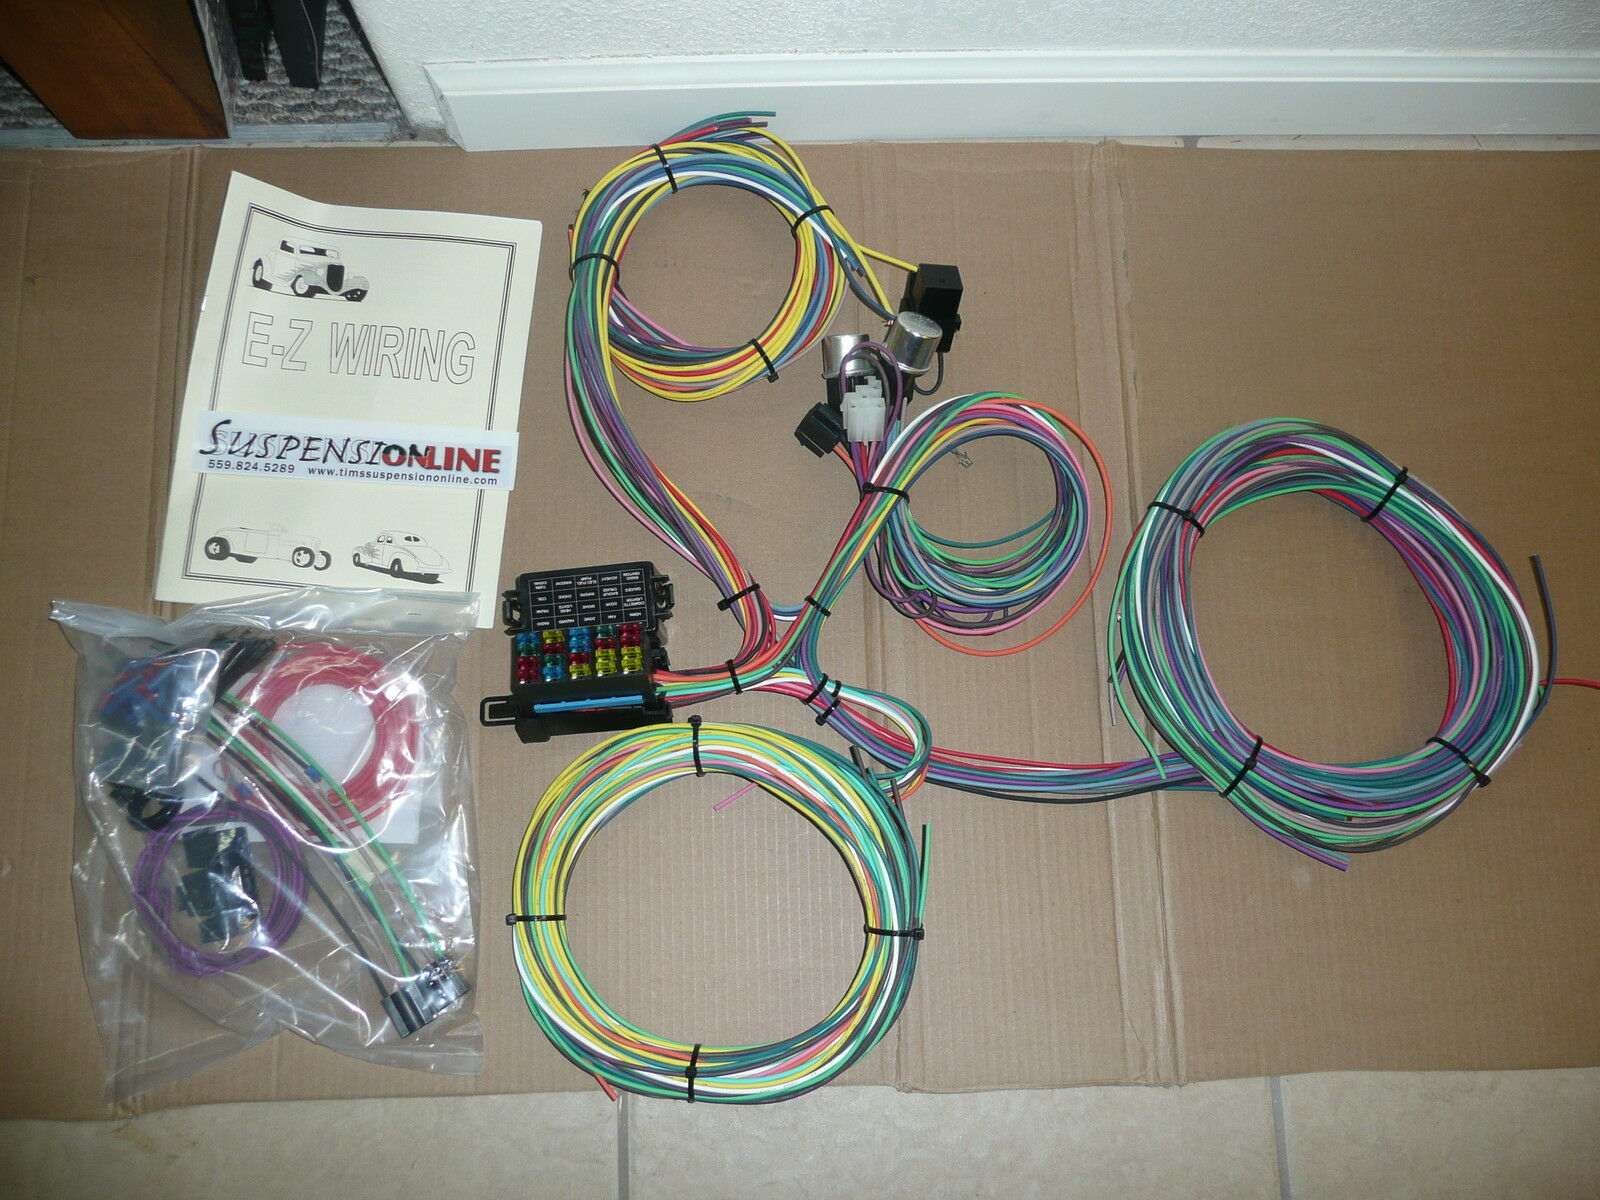 20 Ez Wiring Harness Electrical Diagrams Jeep Cj7 Mini Fuses Universal Street Hot Rod Chevy Ford 93 Mustang